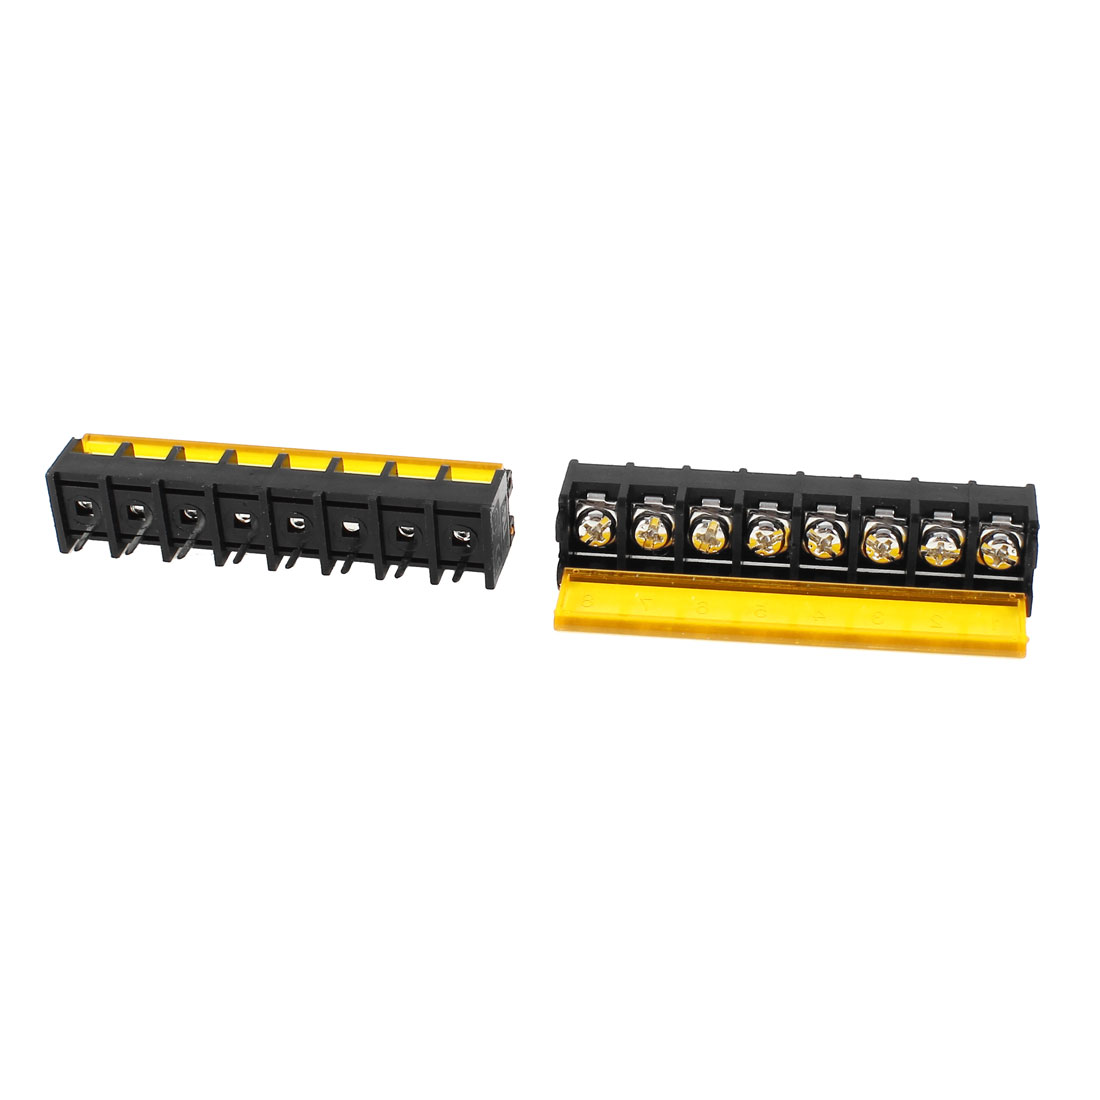 2Pcs 1 Rows 8 Position 9.5mm Pitch Screw Terminal Barrier Block Strip 300V 30A